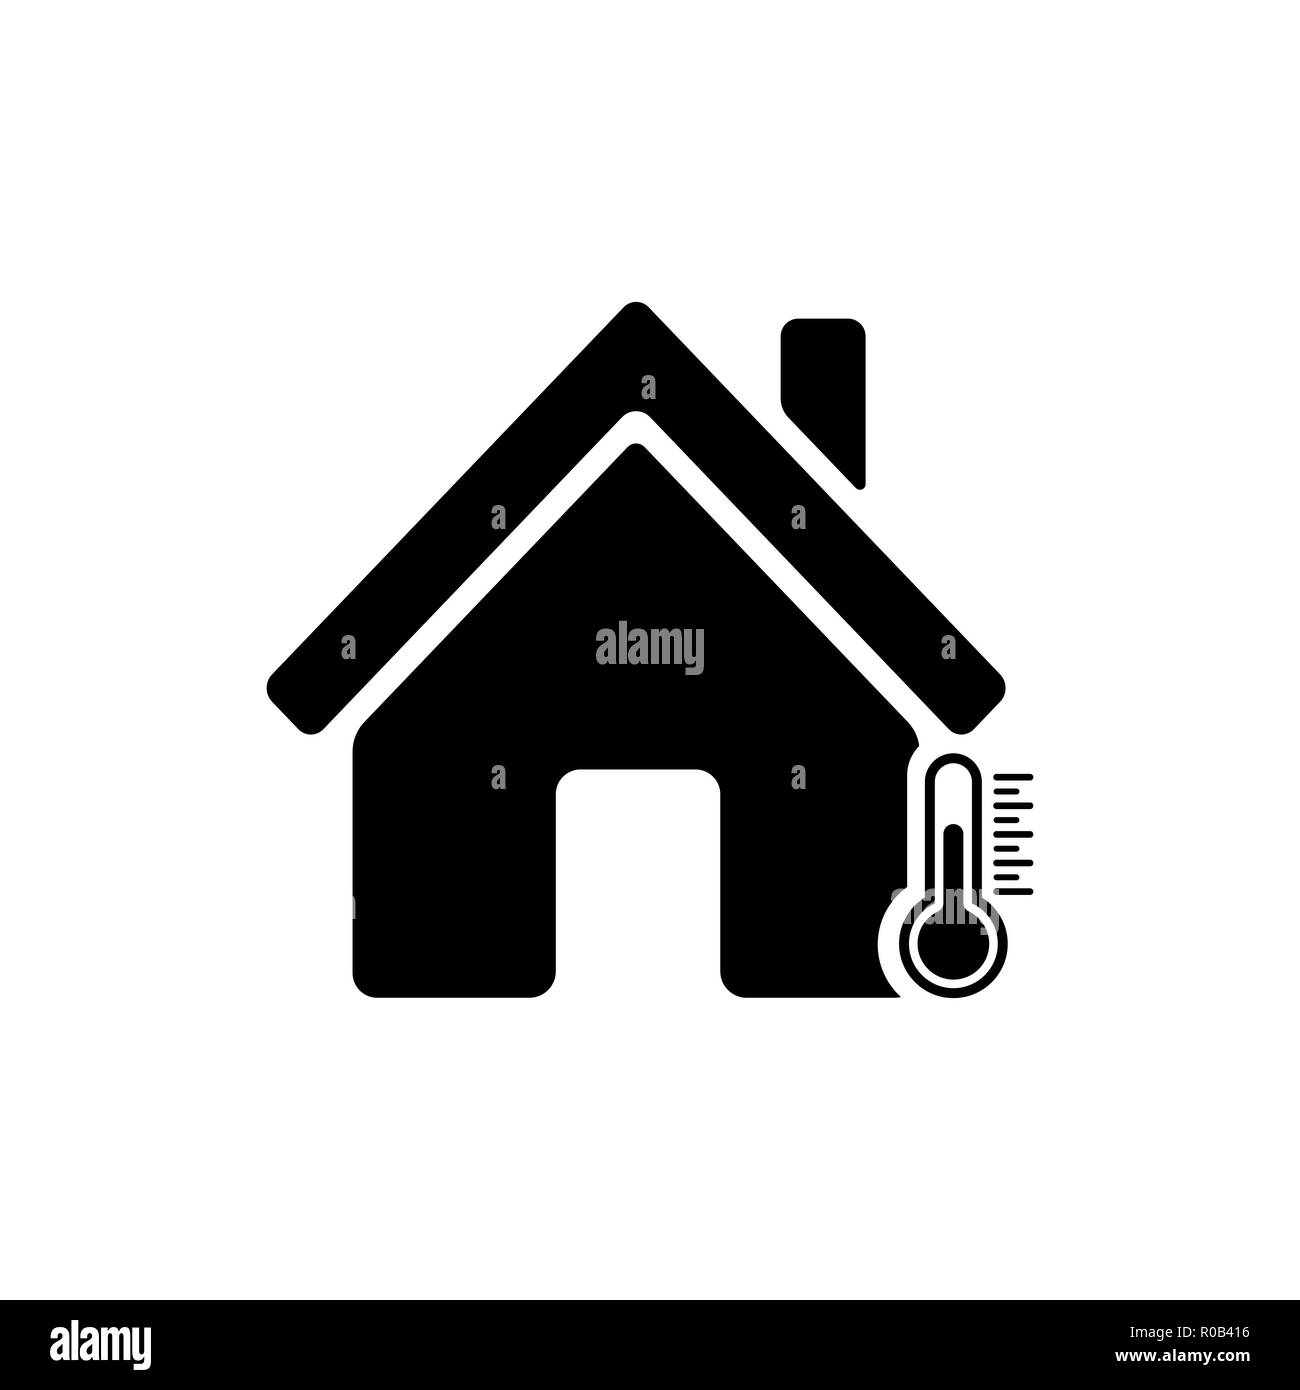 House temperature icon. House and termometer icon - Stock Image